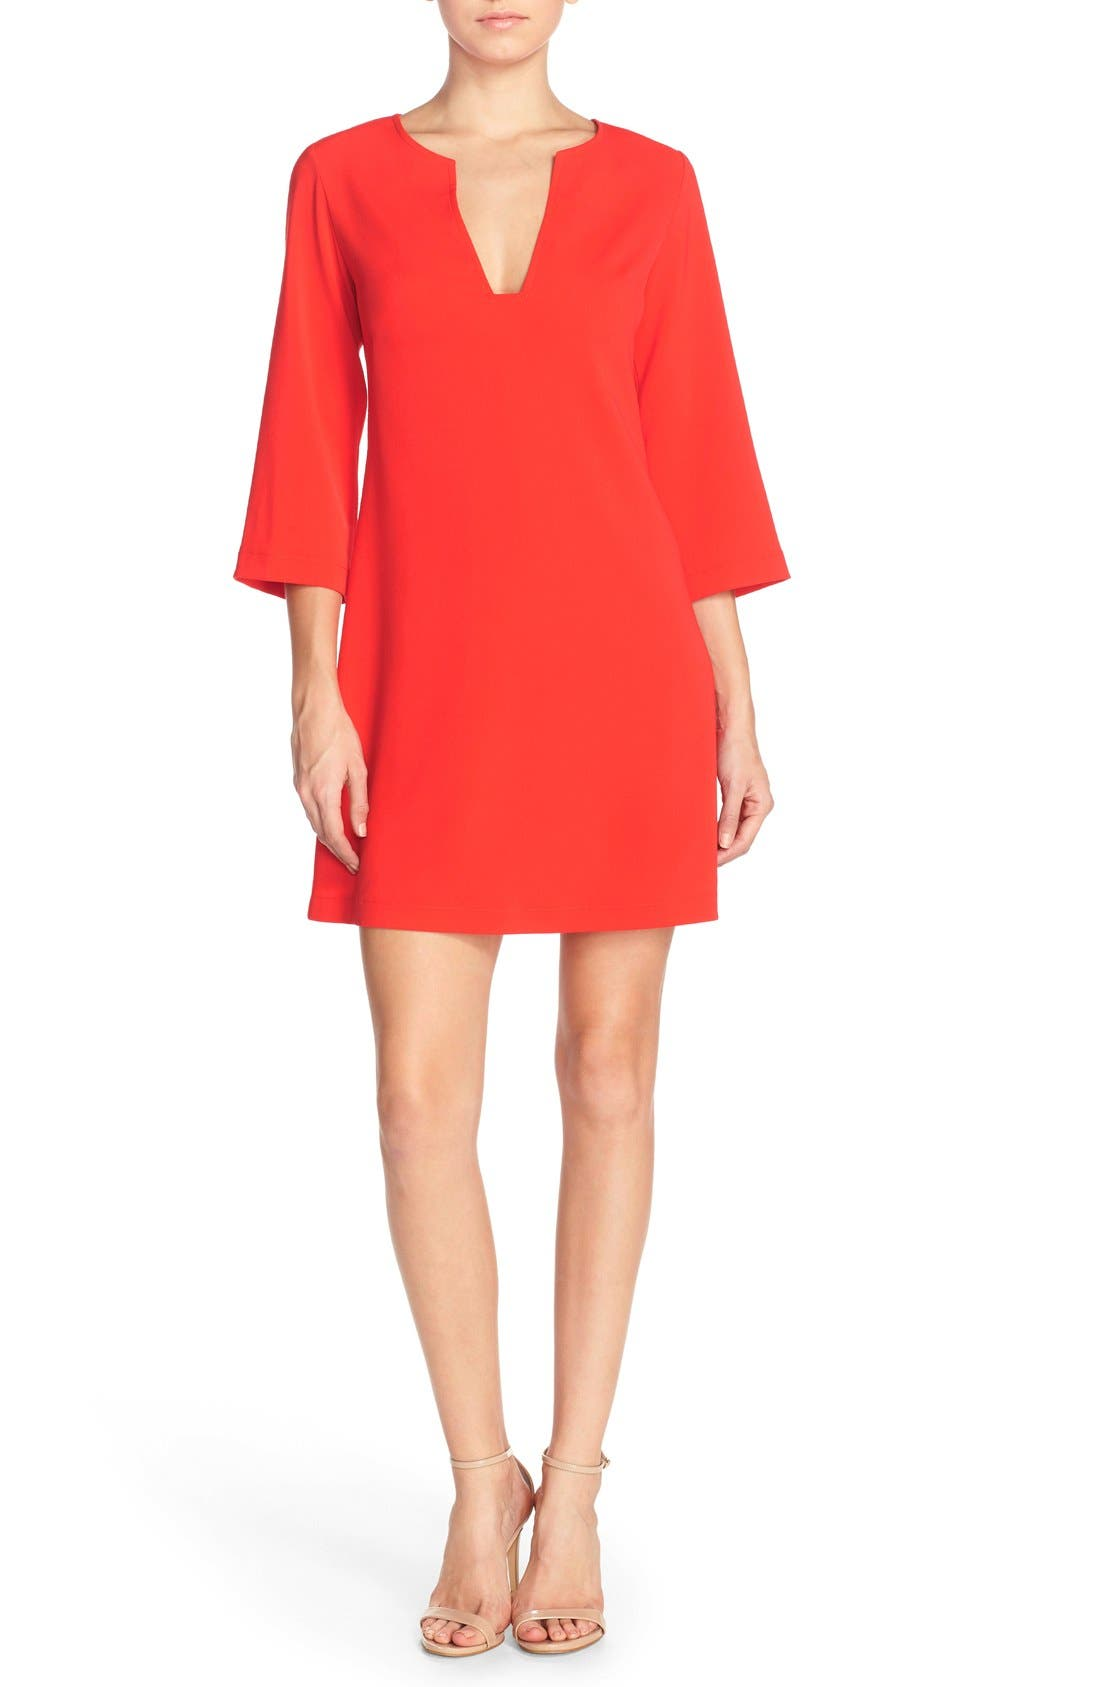 Alternate Image 1 Selected - Amanda Uprichard Stretch Crepe A-Line Dress